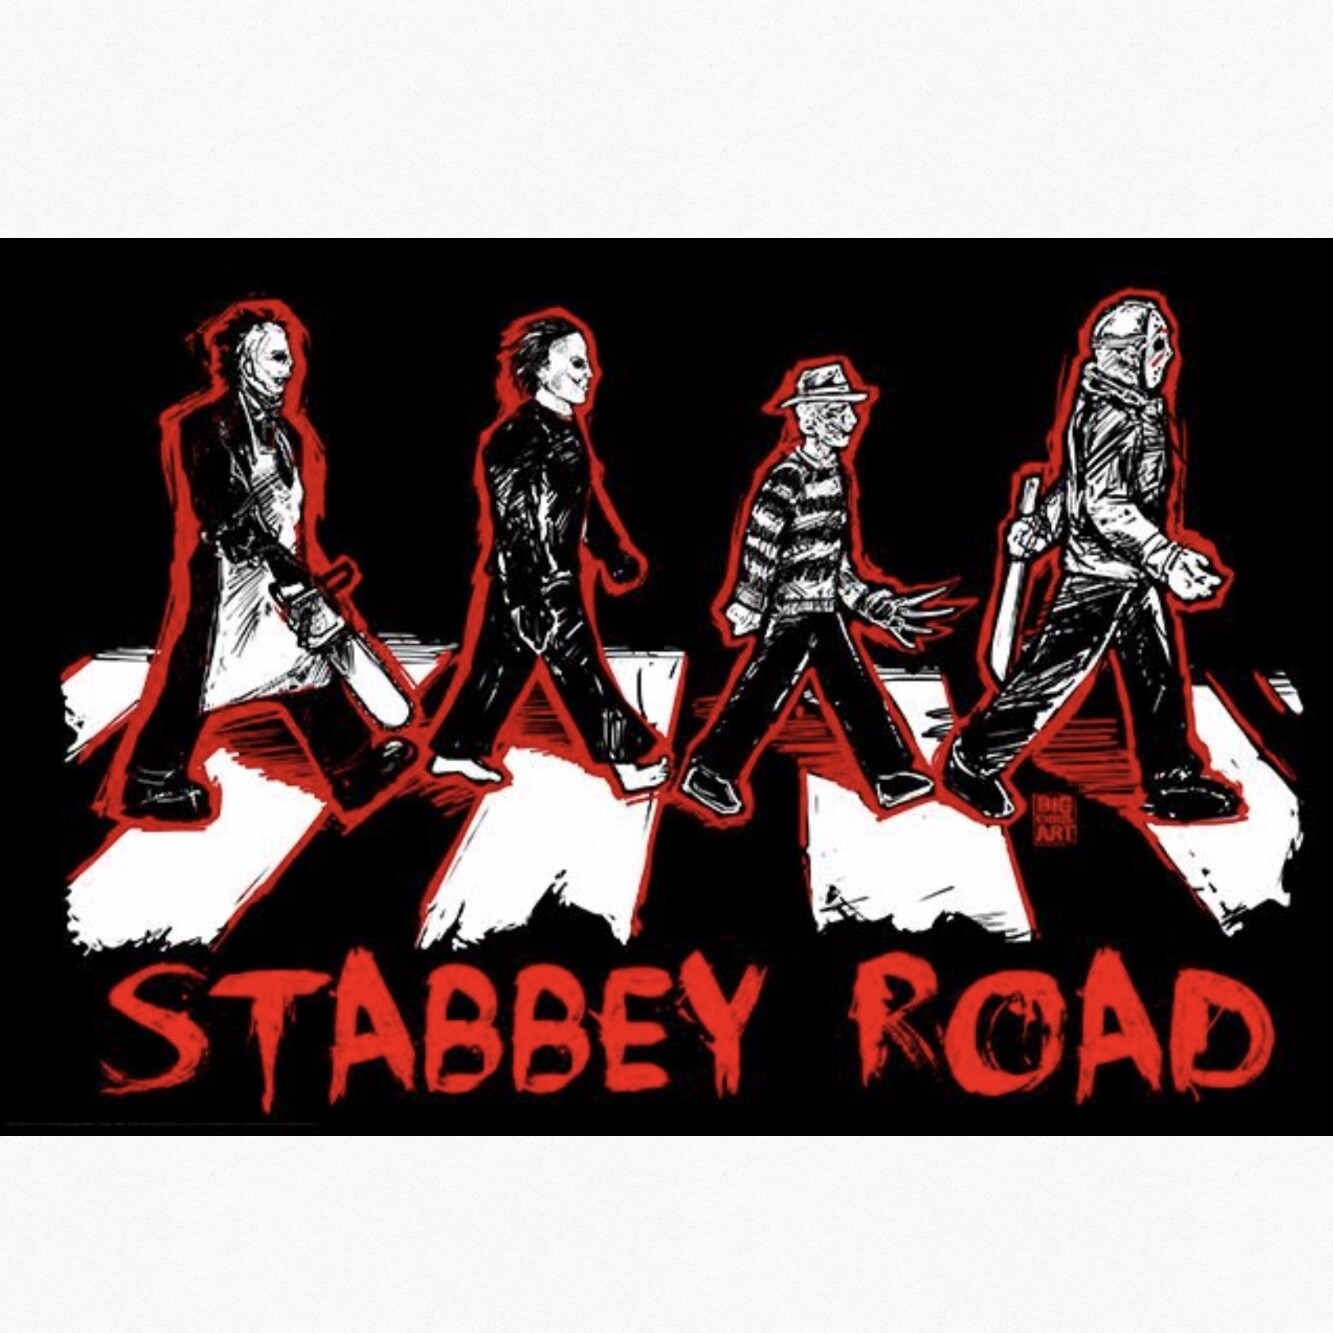 STABBEY ROAD POSTER